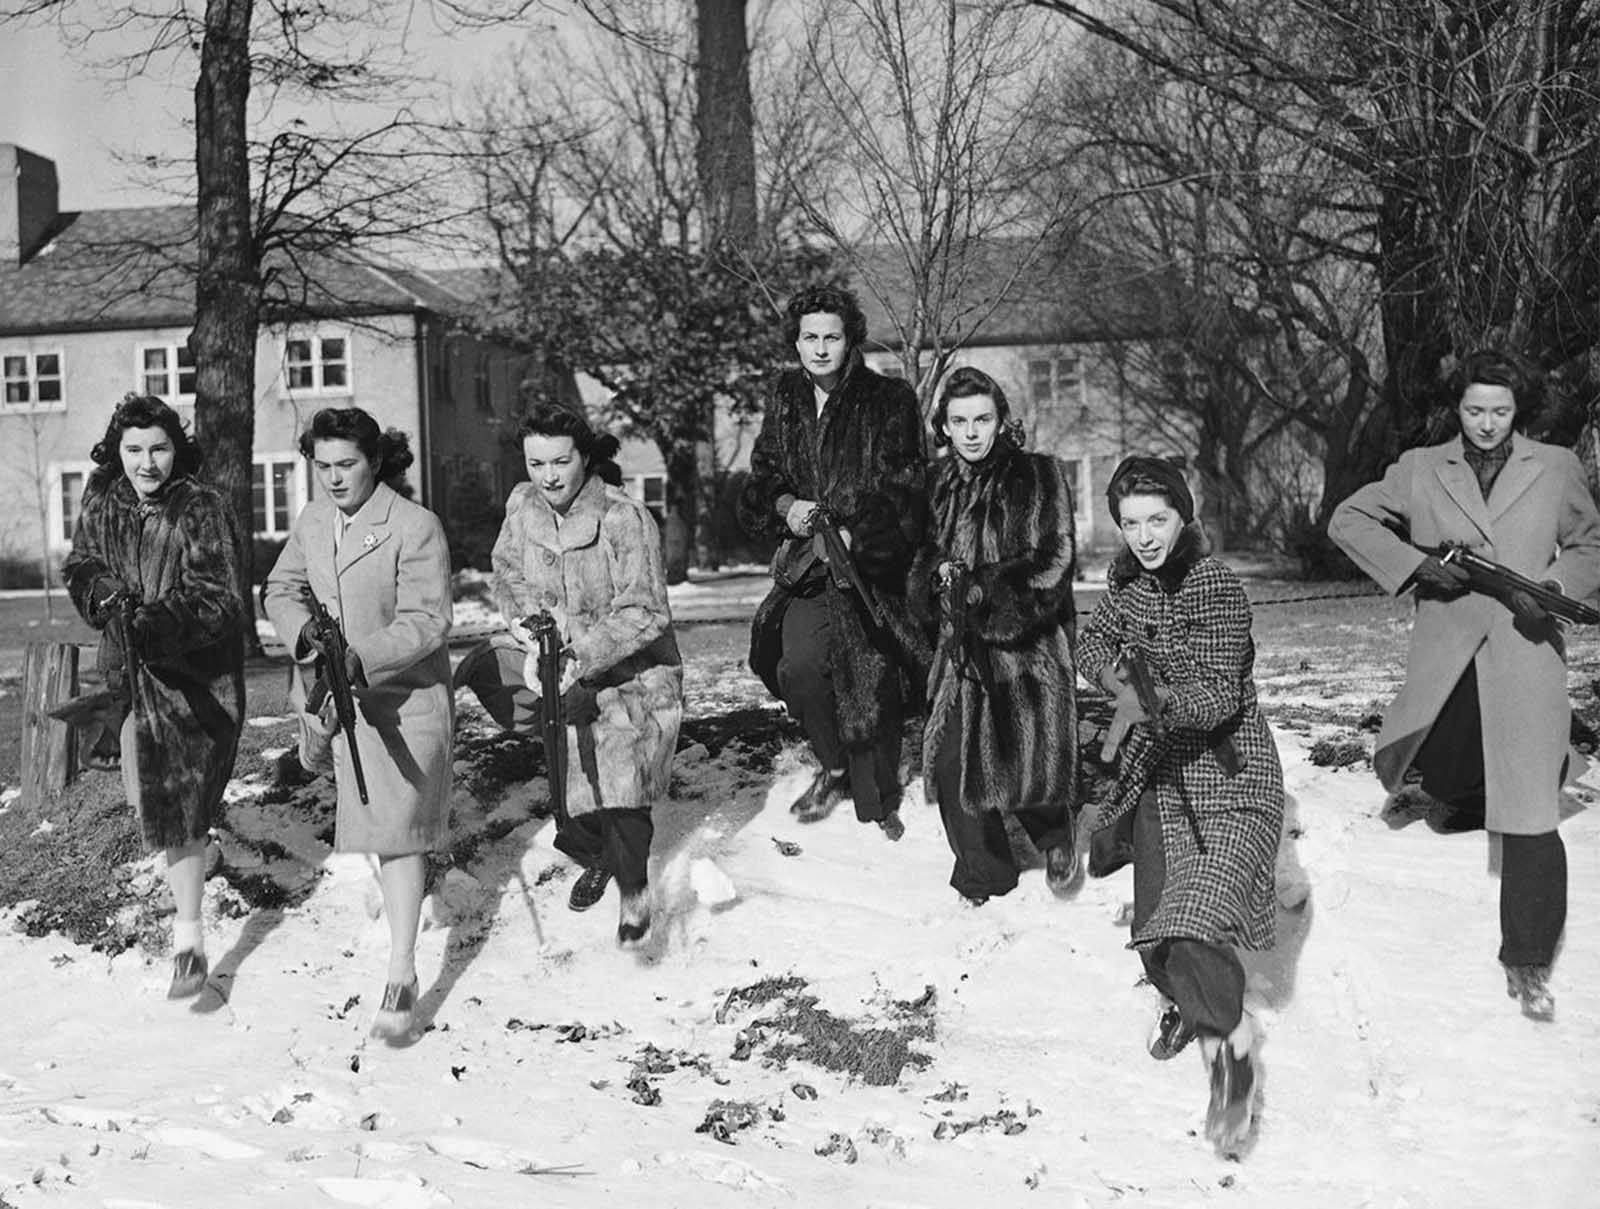 These Northwestern University girls brave freezing weather to go through a Home Guard rifle drill on the campus in Evanston, Illinois on January 11, 1942. From left to right are: Jeanne Paul, age 18, of Oak Park, Illinois,; Virginia Paisley, 18, of Lakewood, Ohio; Marian Walsh, 19, also from Lakewood; Sarah Robinson, 20, of Jonesboro, Arkansas,; Elizabeth Cooper, 17, of Chicago; Harriet Ginsberg, 17.